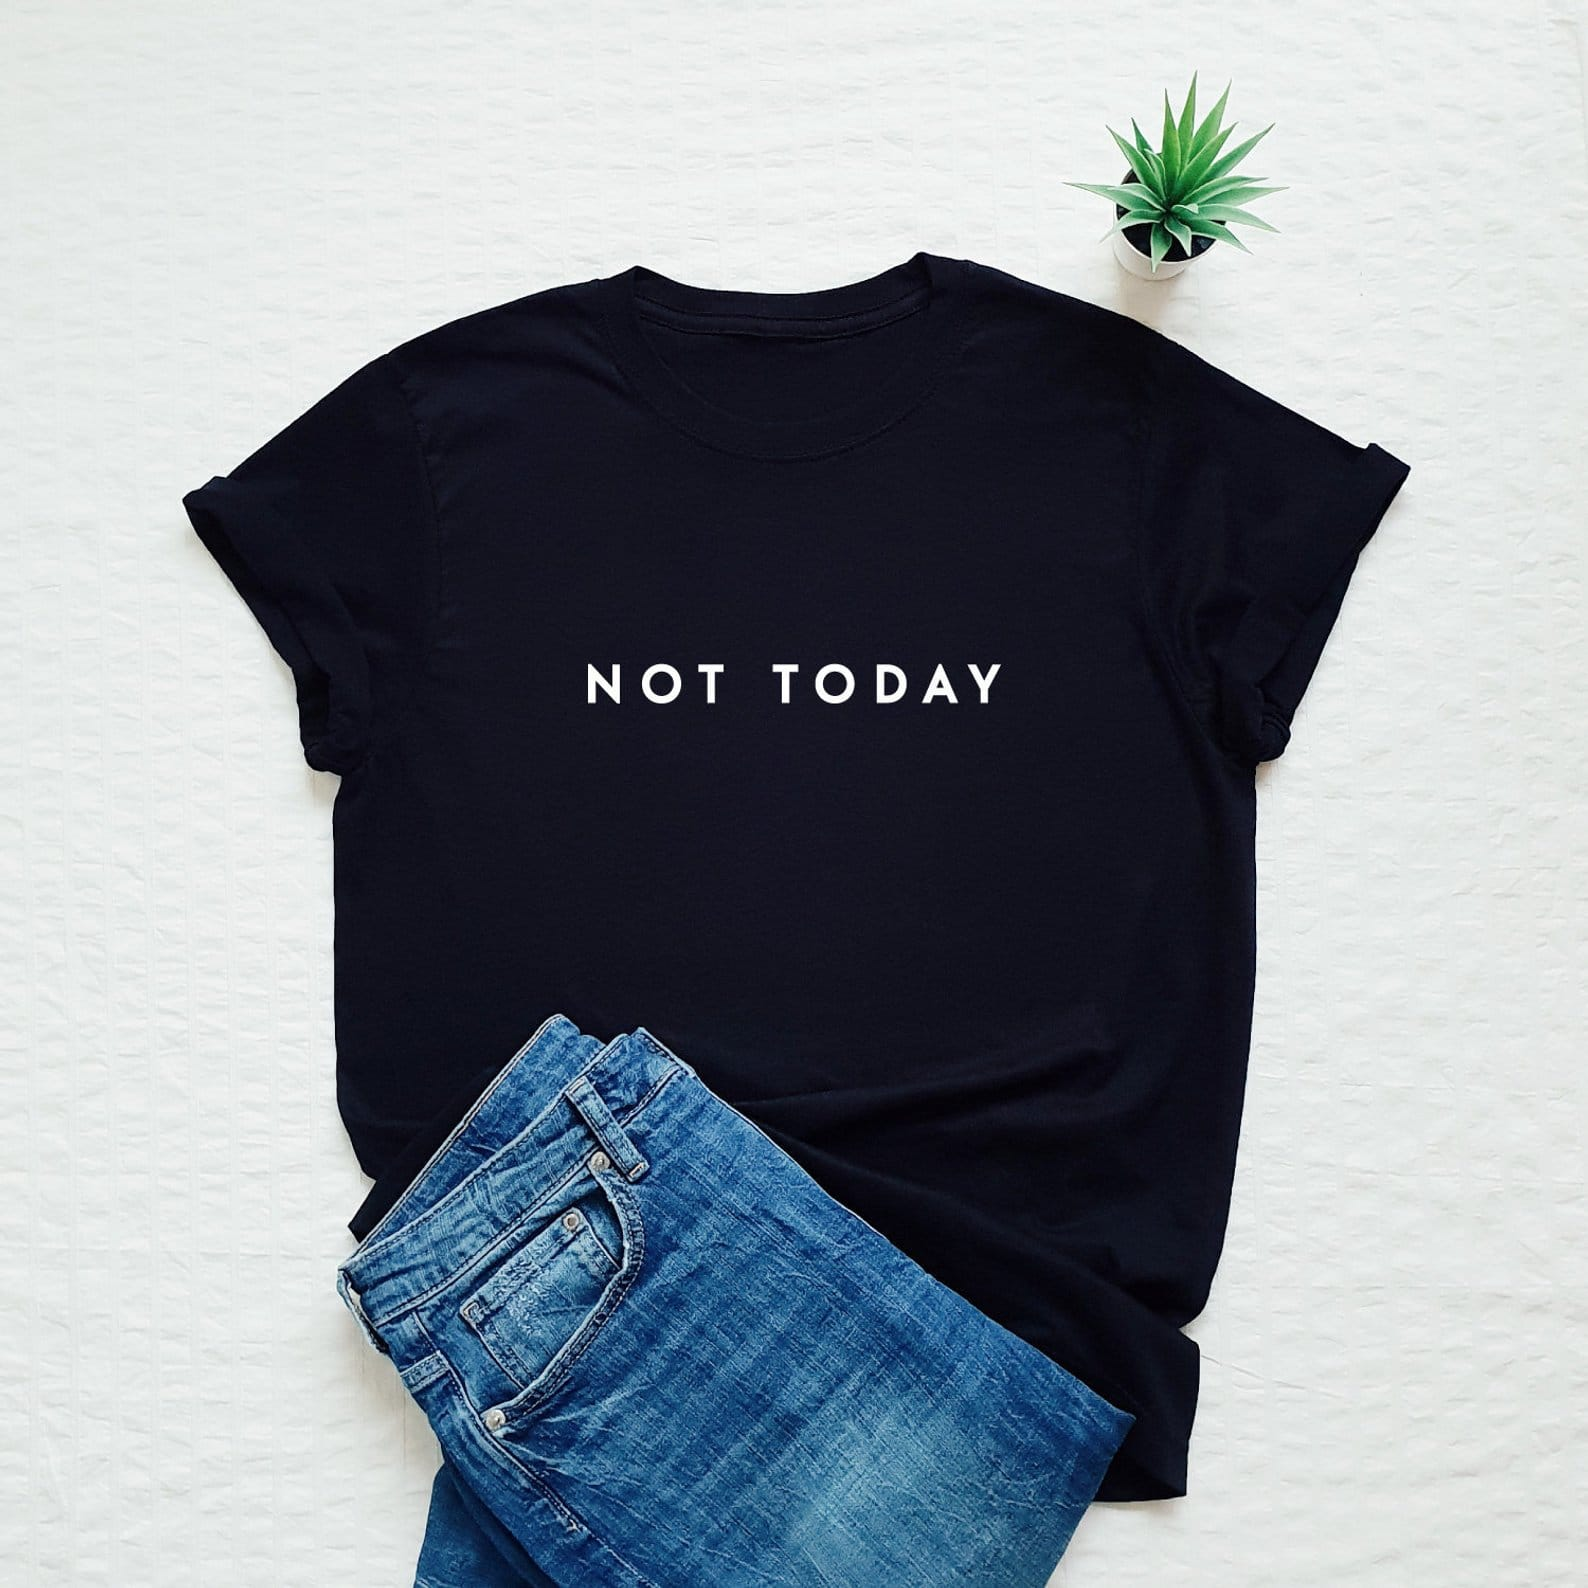 8 T-Shirts To Wear When You Just Don't Want to Be Bothered